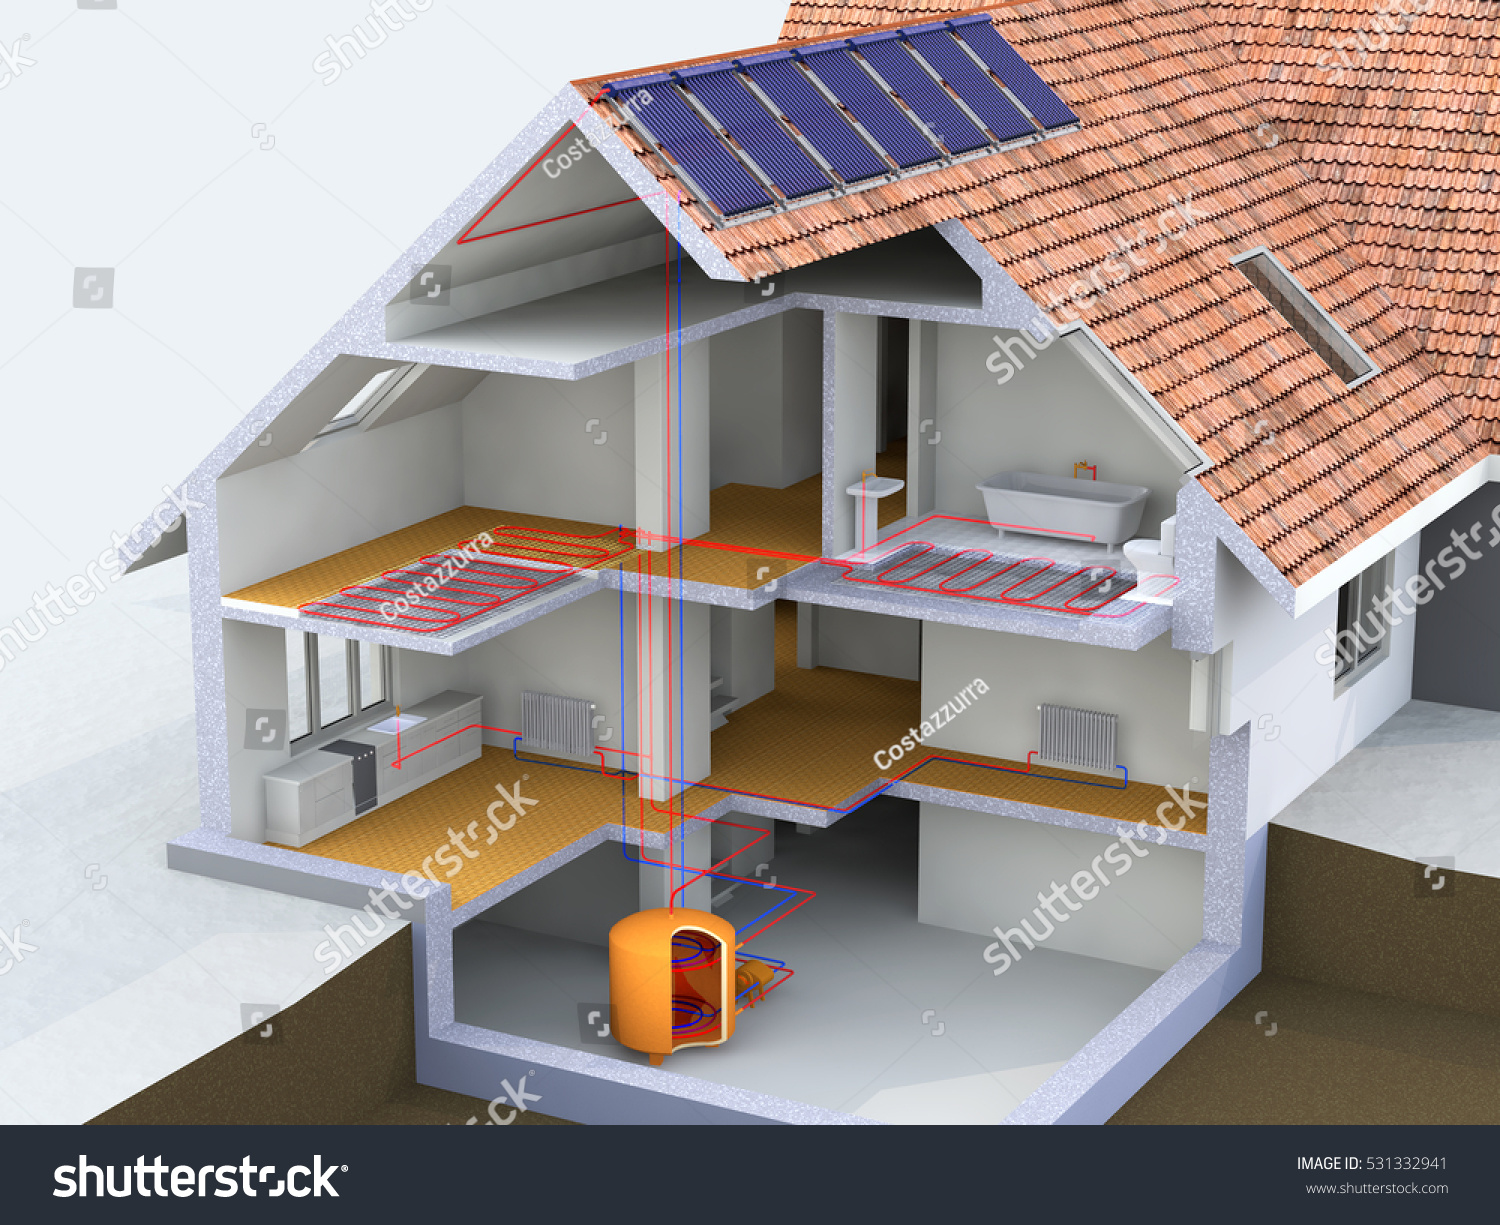 Alternative heated house solar panels heating stock for Heating systems for small homes